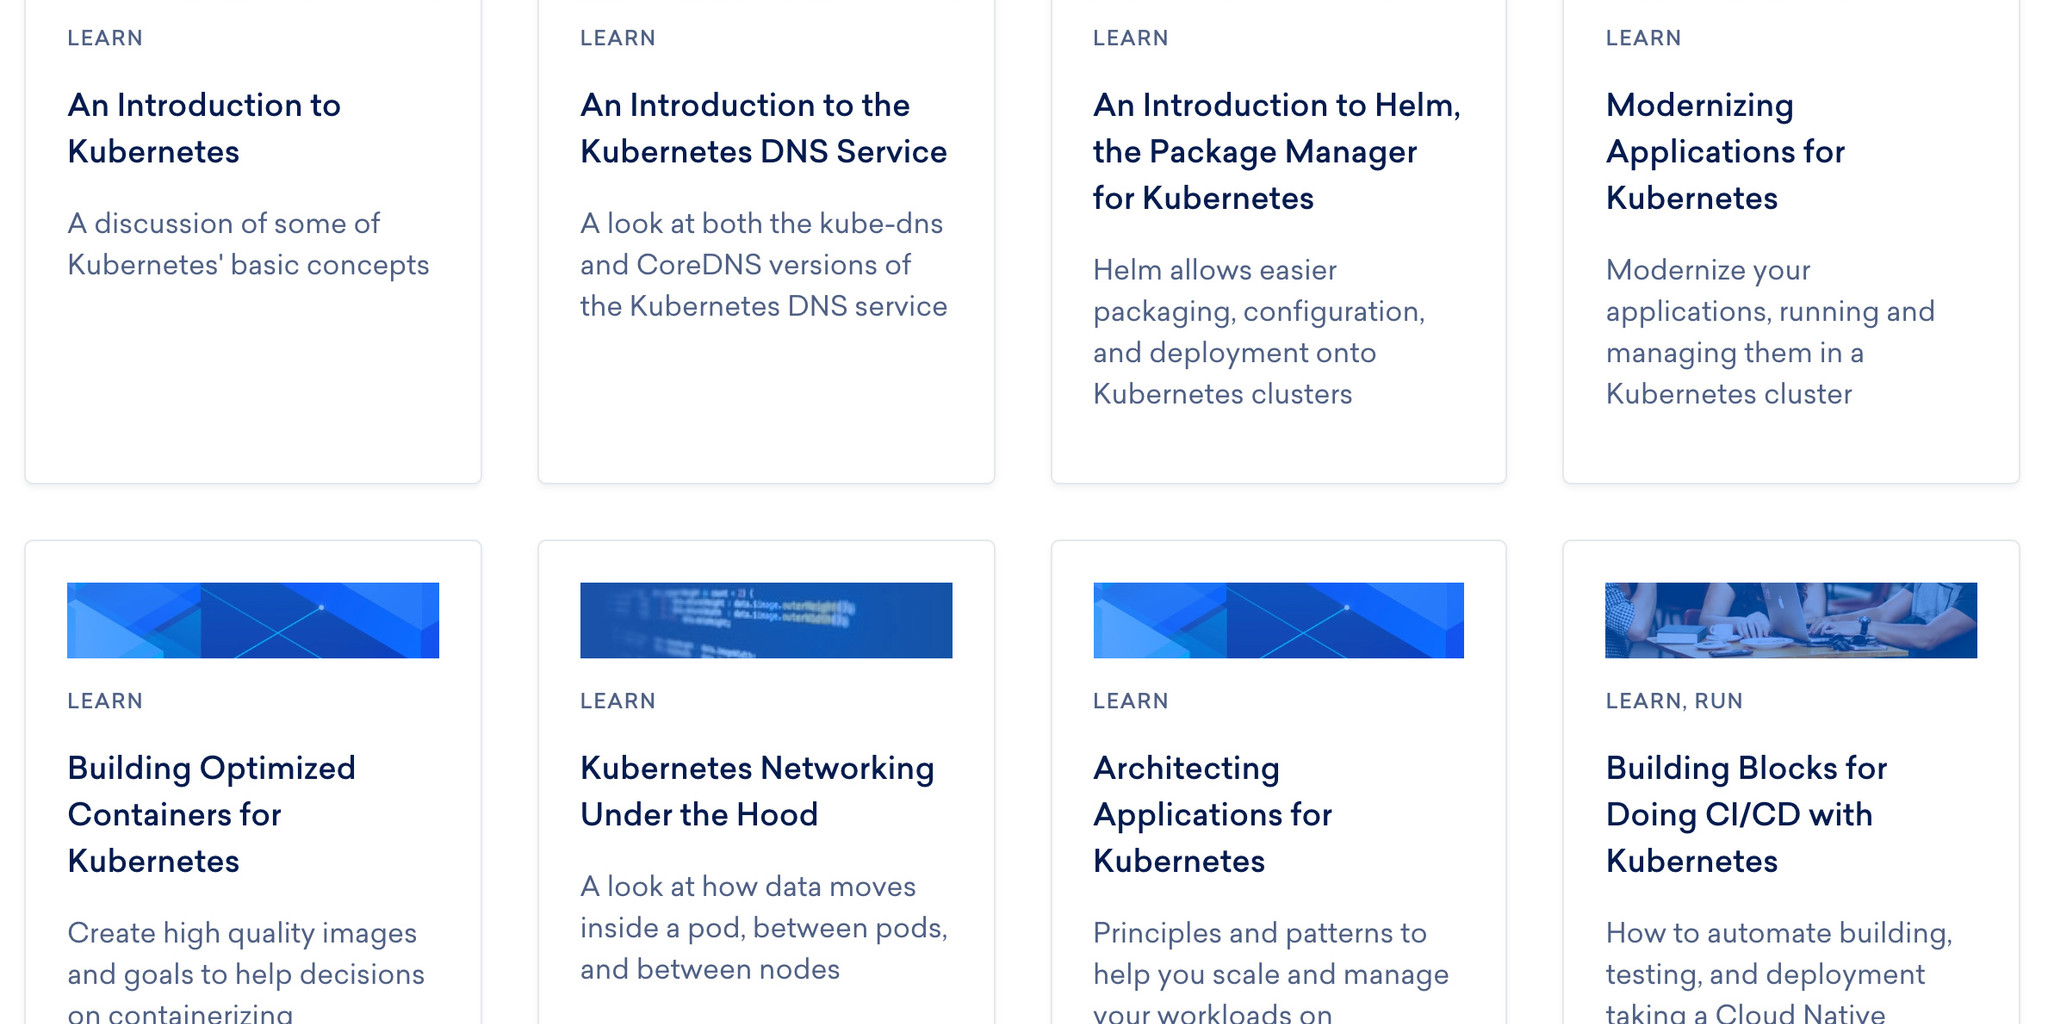 Learn Kubernetes on DigitalOcean